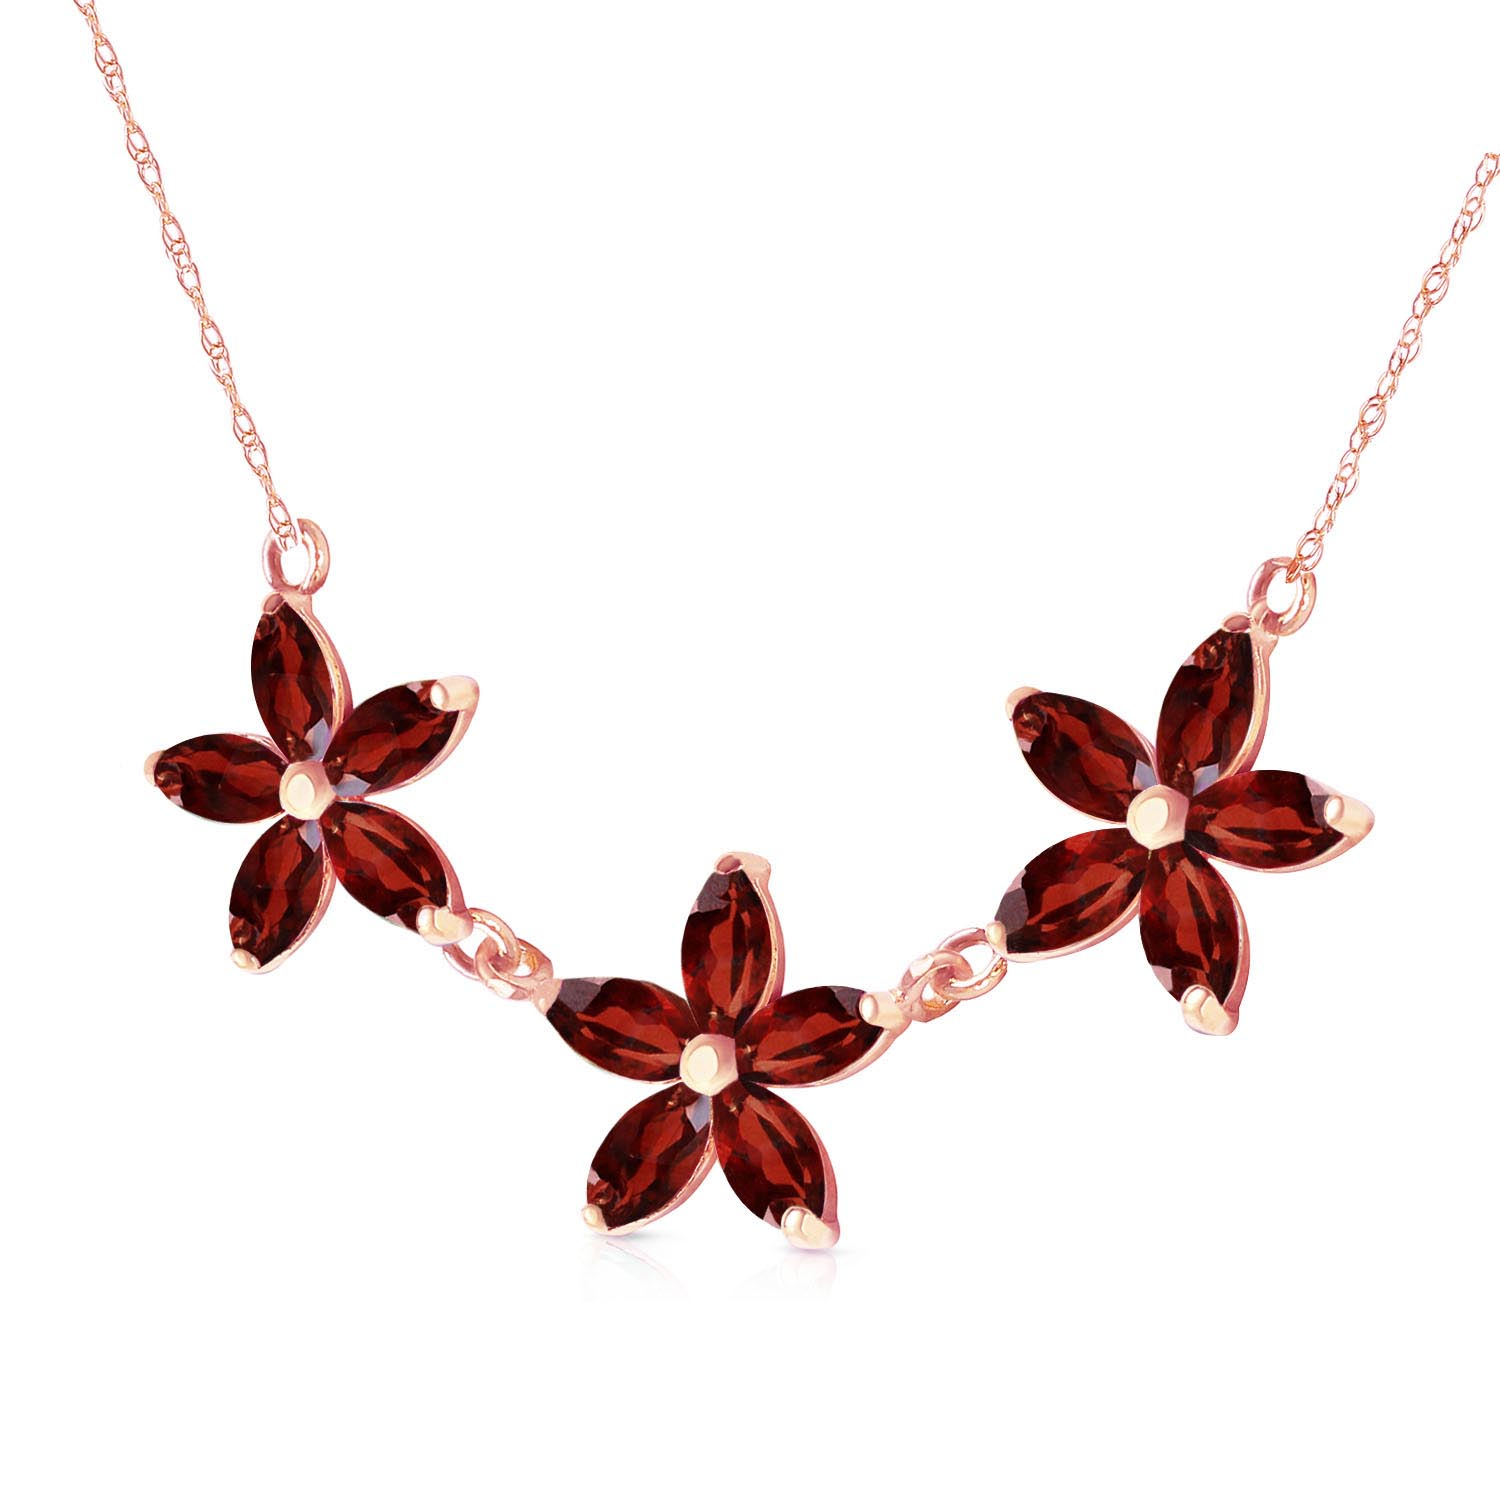 Marquise Cut Garnet Pendant Necklace 4.2ct in 9ct Rose Gold